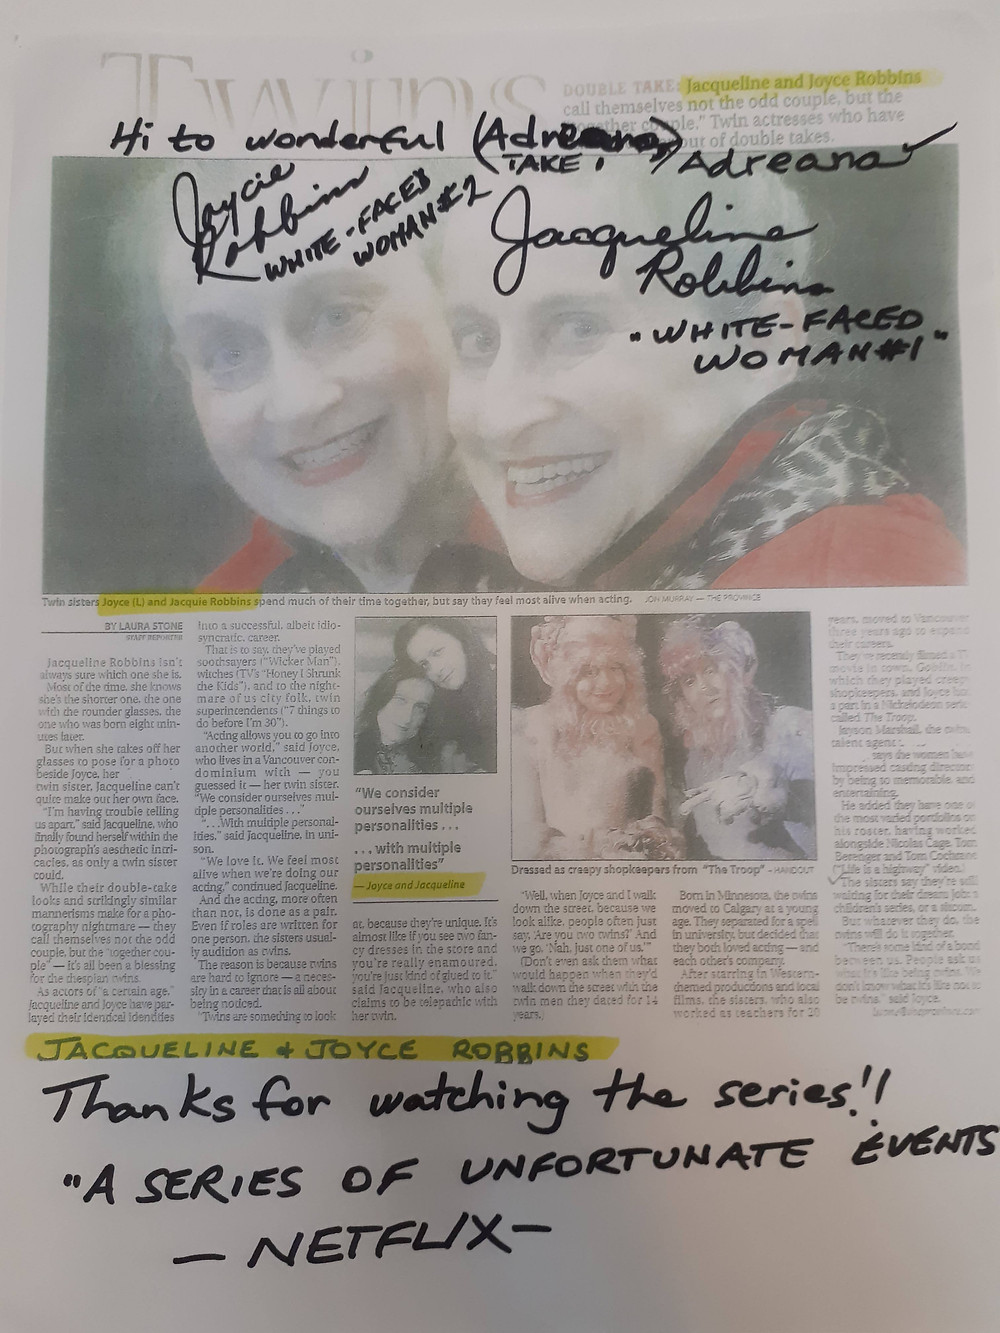 Autographs from Joyce and Jacqueline Robbins